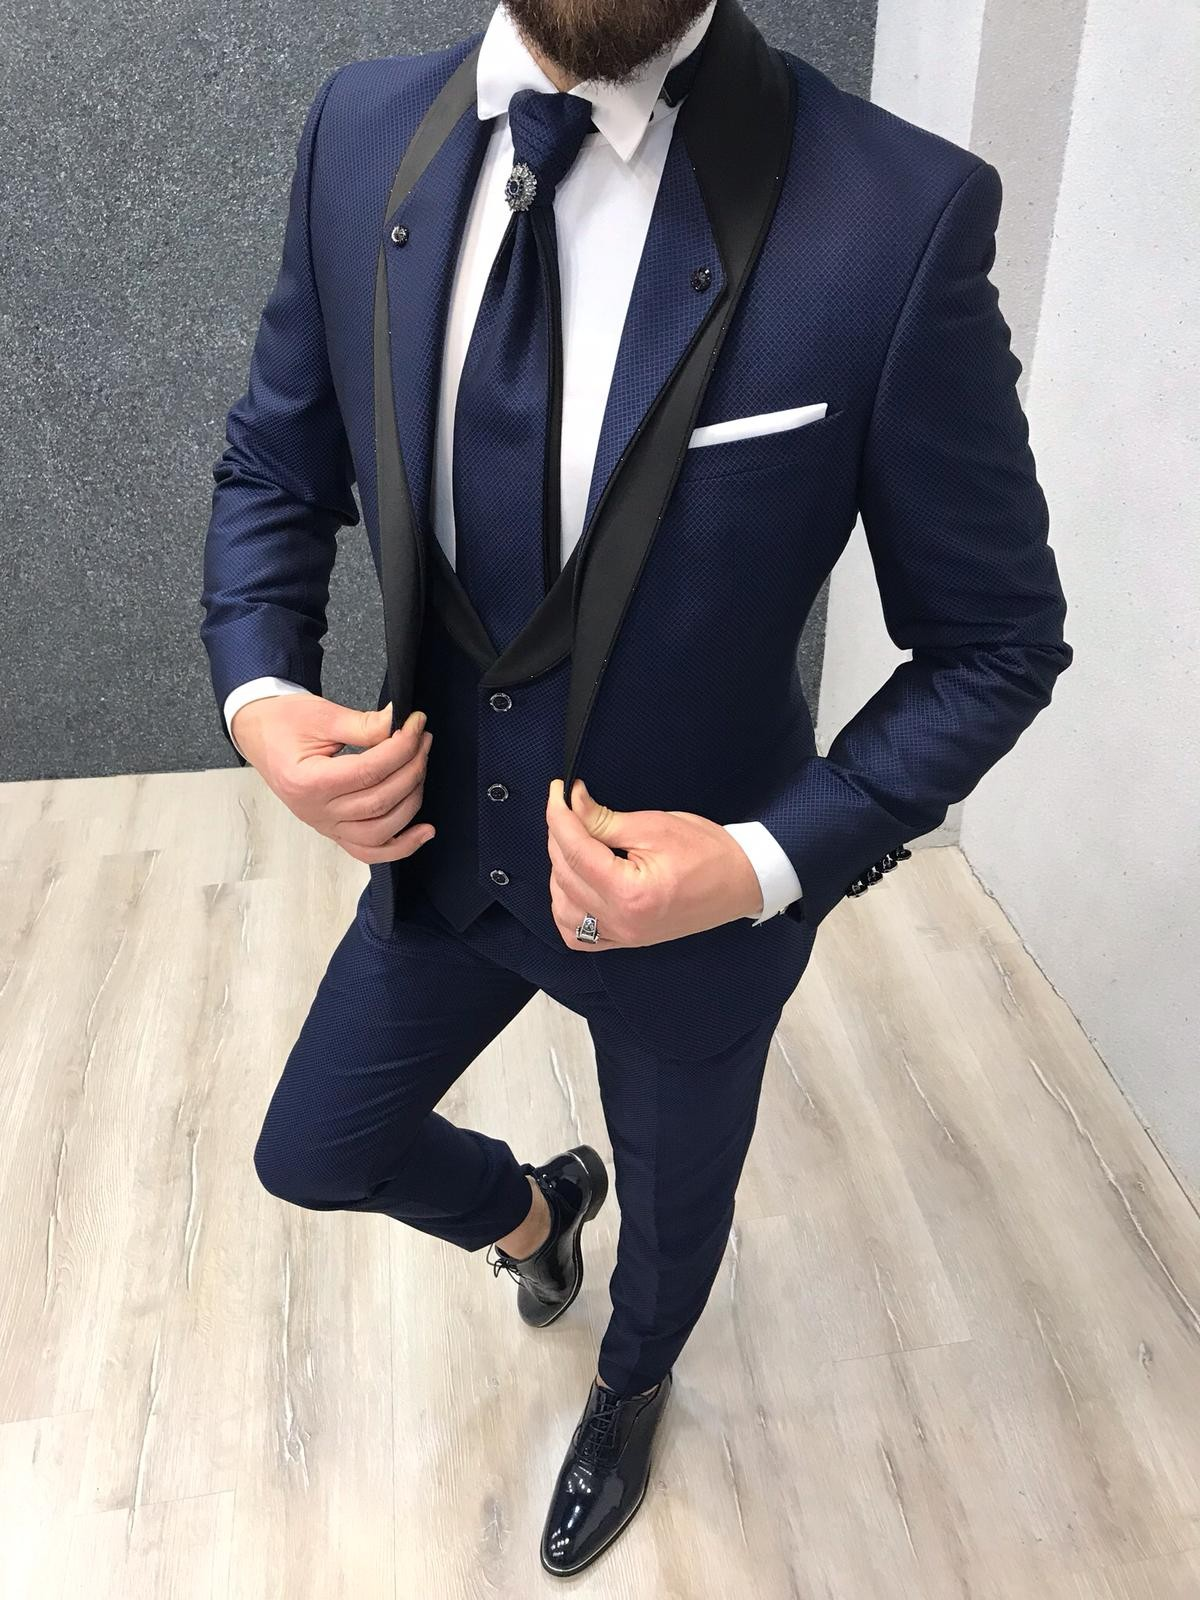 10 Groom Suit Ideas for Your Big Day by GentWith